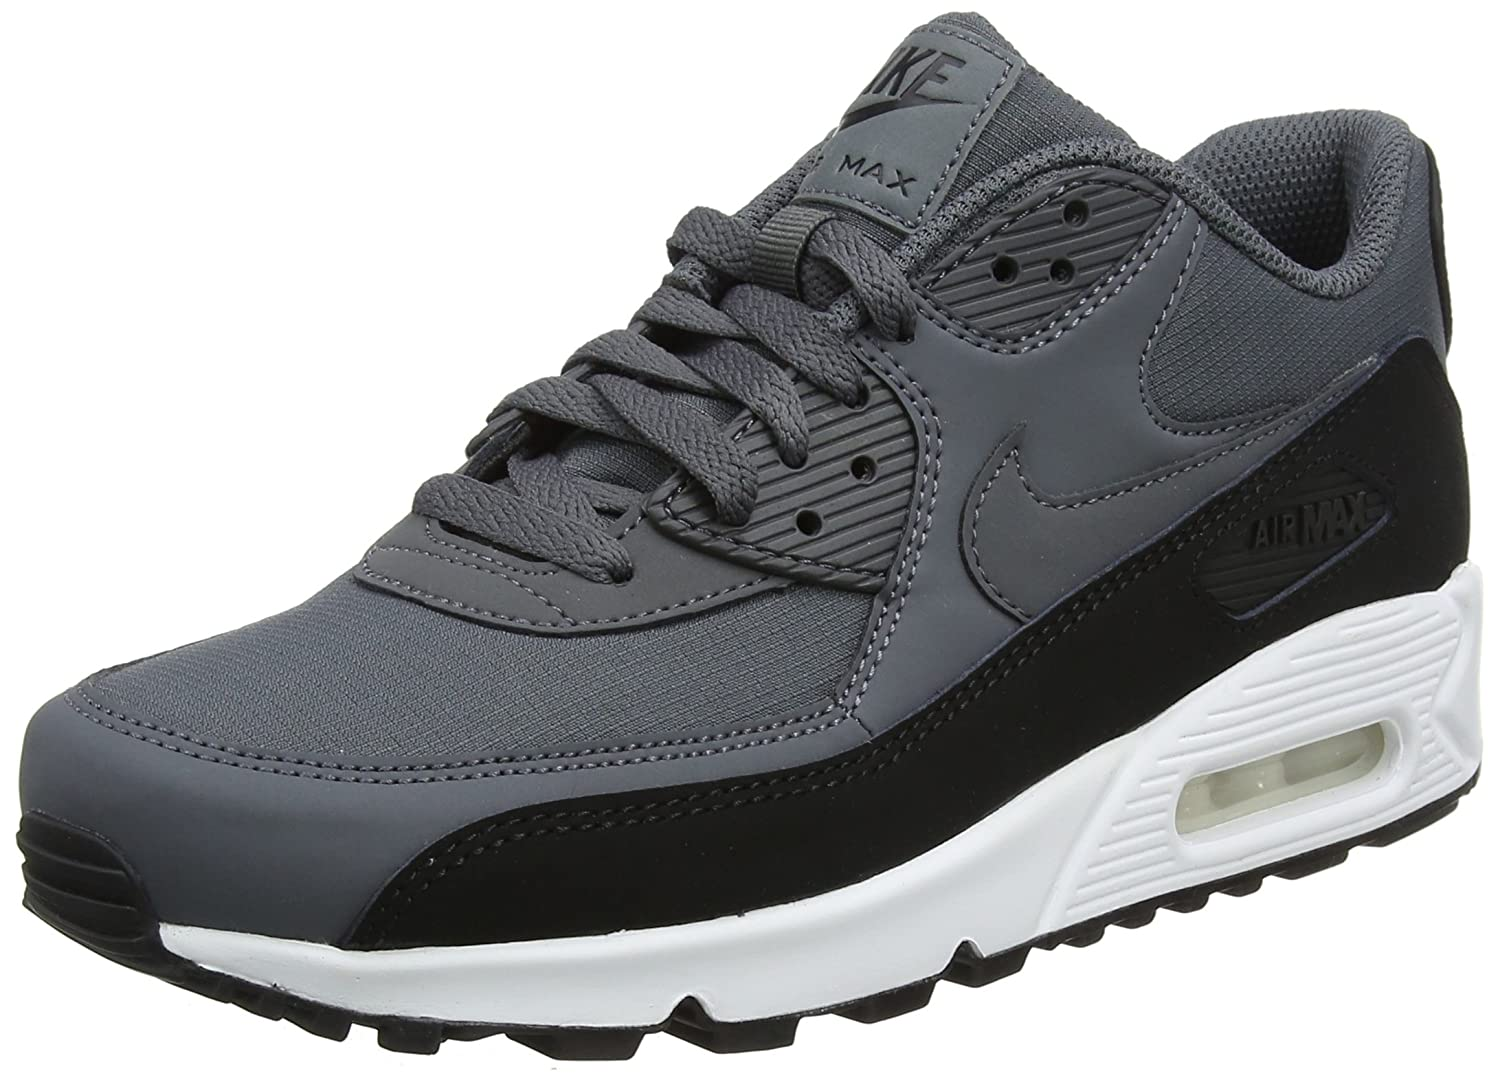 buy popular 7437a e042e ... new zealand nike nike air max 90 menn sko grå hvit bad qkhp5eqfri edf6f  f1f37